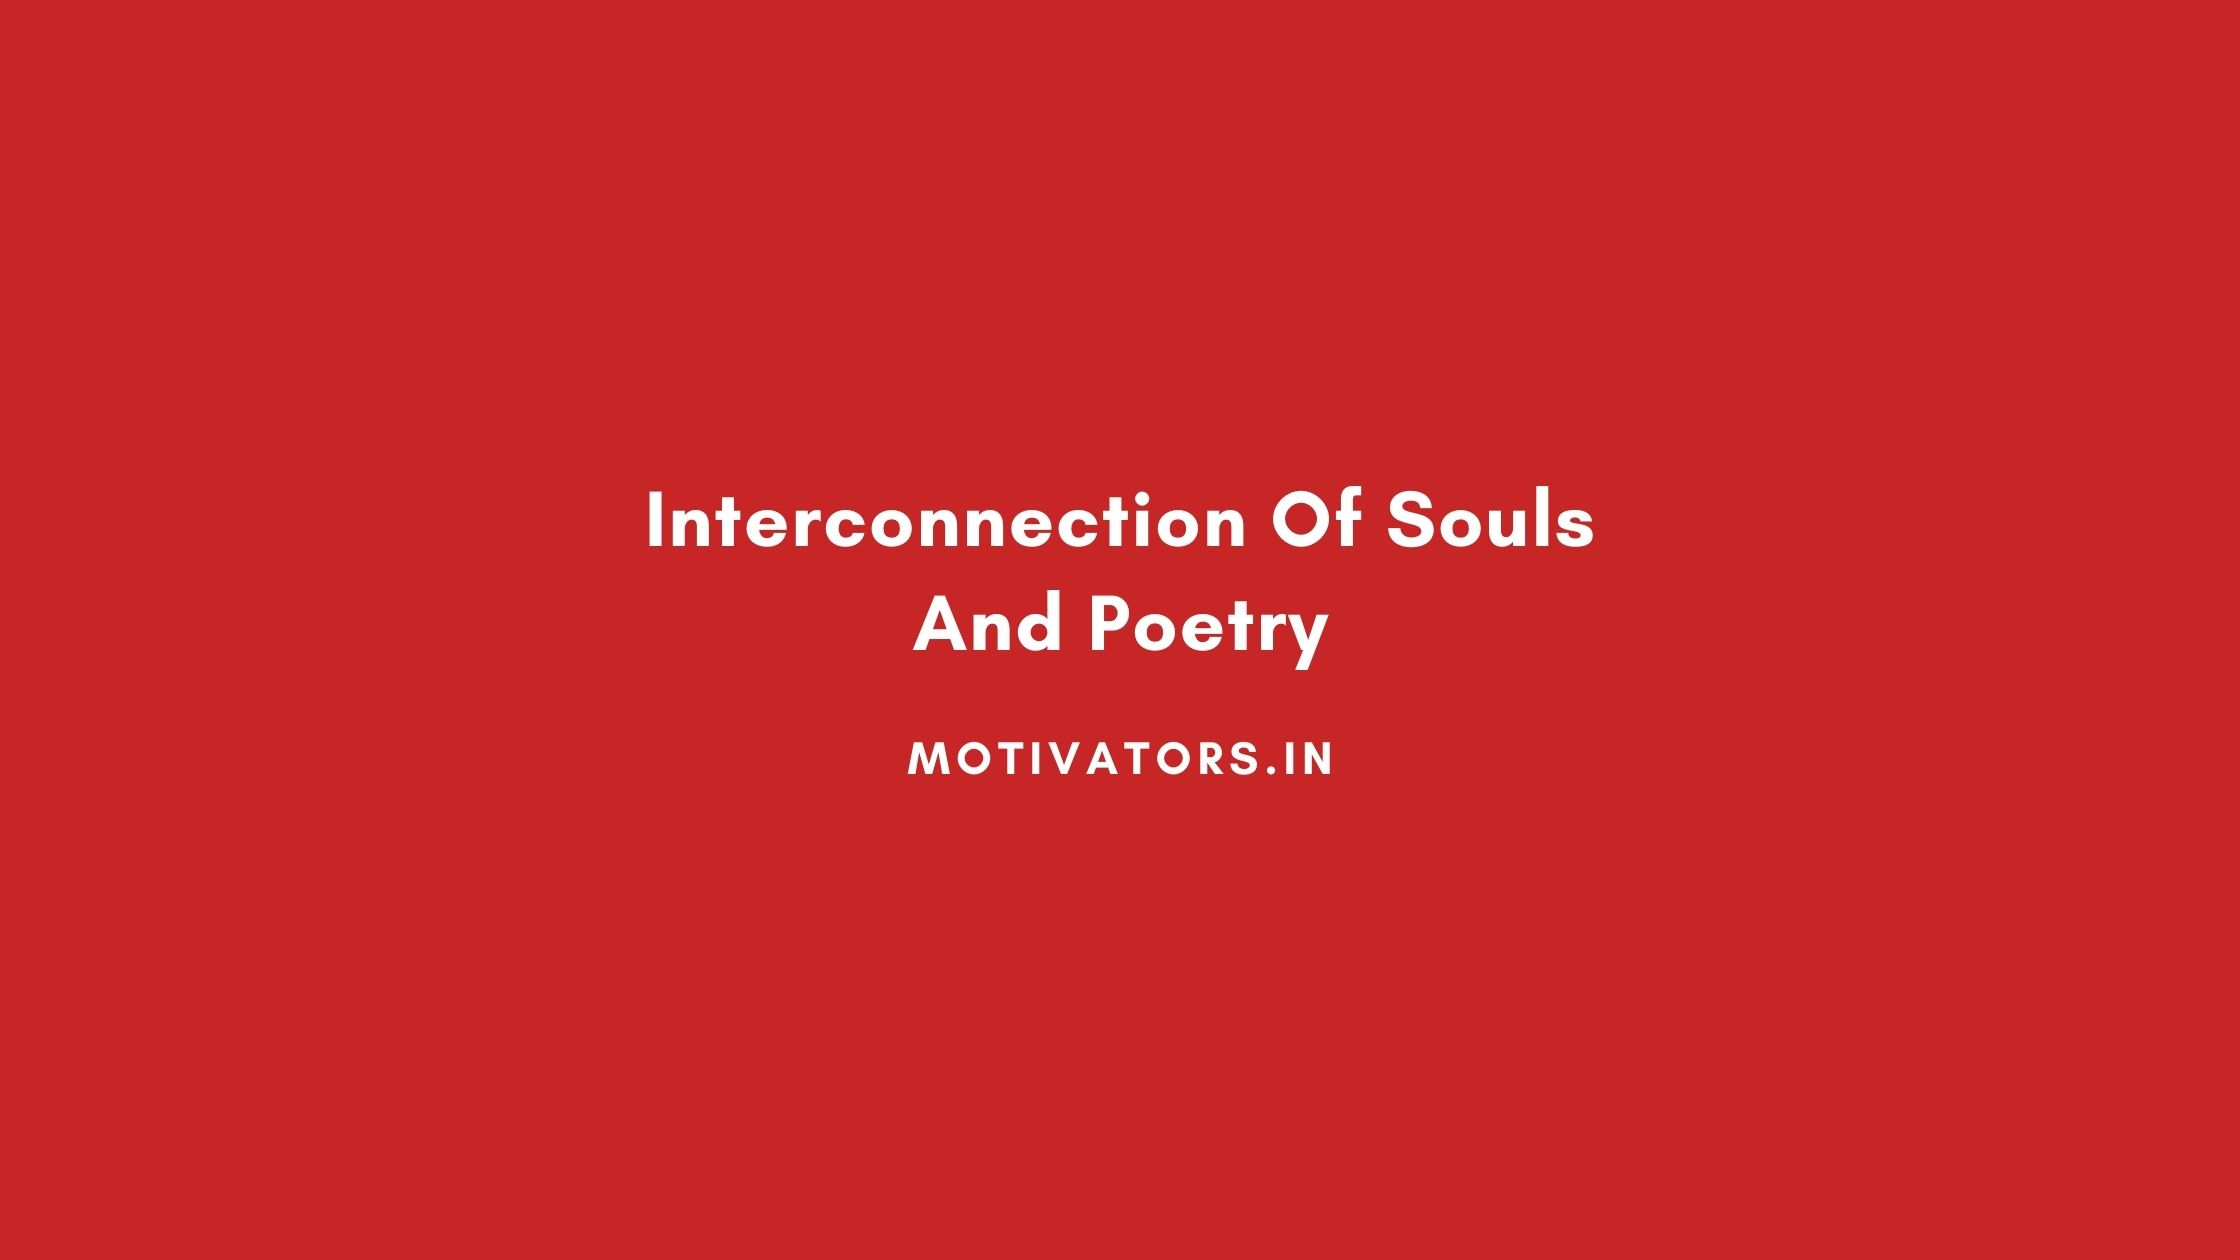 Interconnection Of Souls And Poetry